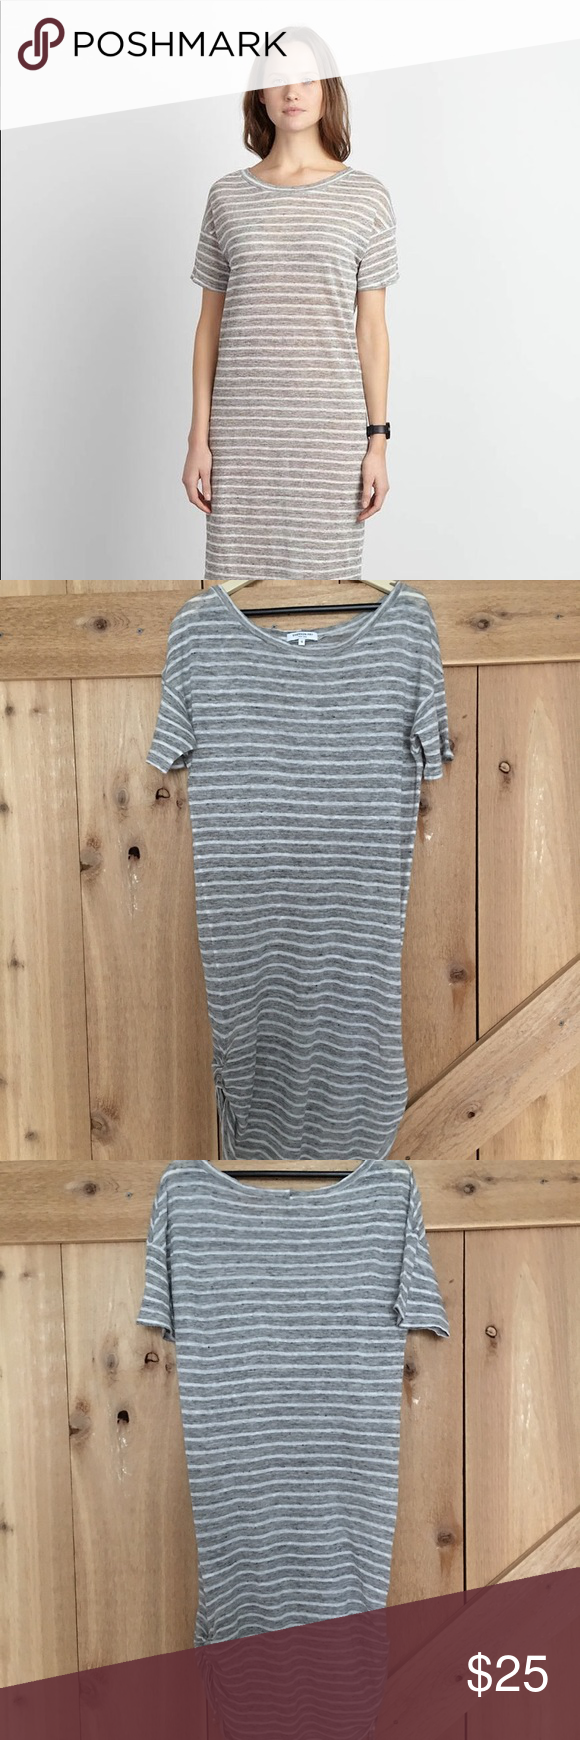 "Emerson fry striped tie-up dress linen granite Light linen/semi-sheer cover up type dress, size small.  Cute tie-ups both bottom sides.  Worn once and laundered.  Very good condition, no noticeable flaws.  31"" length. Emerson Fry Dresses Midi #emersonfry"